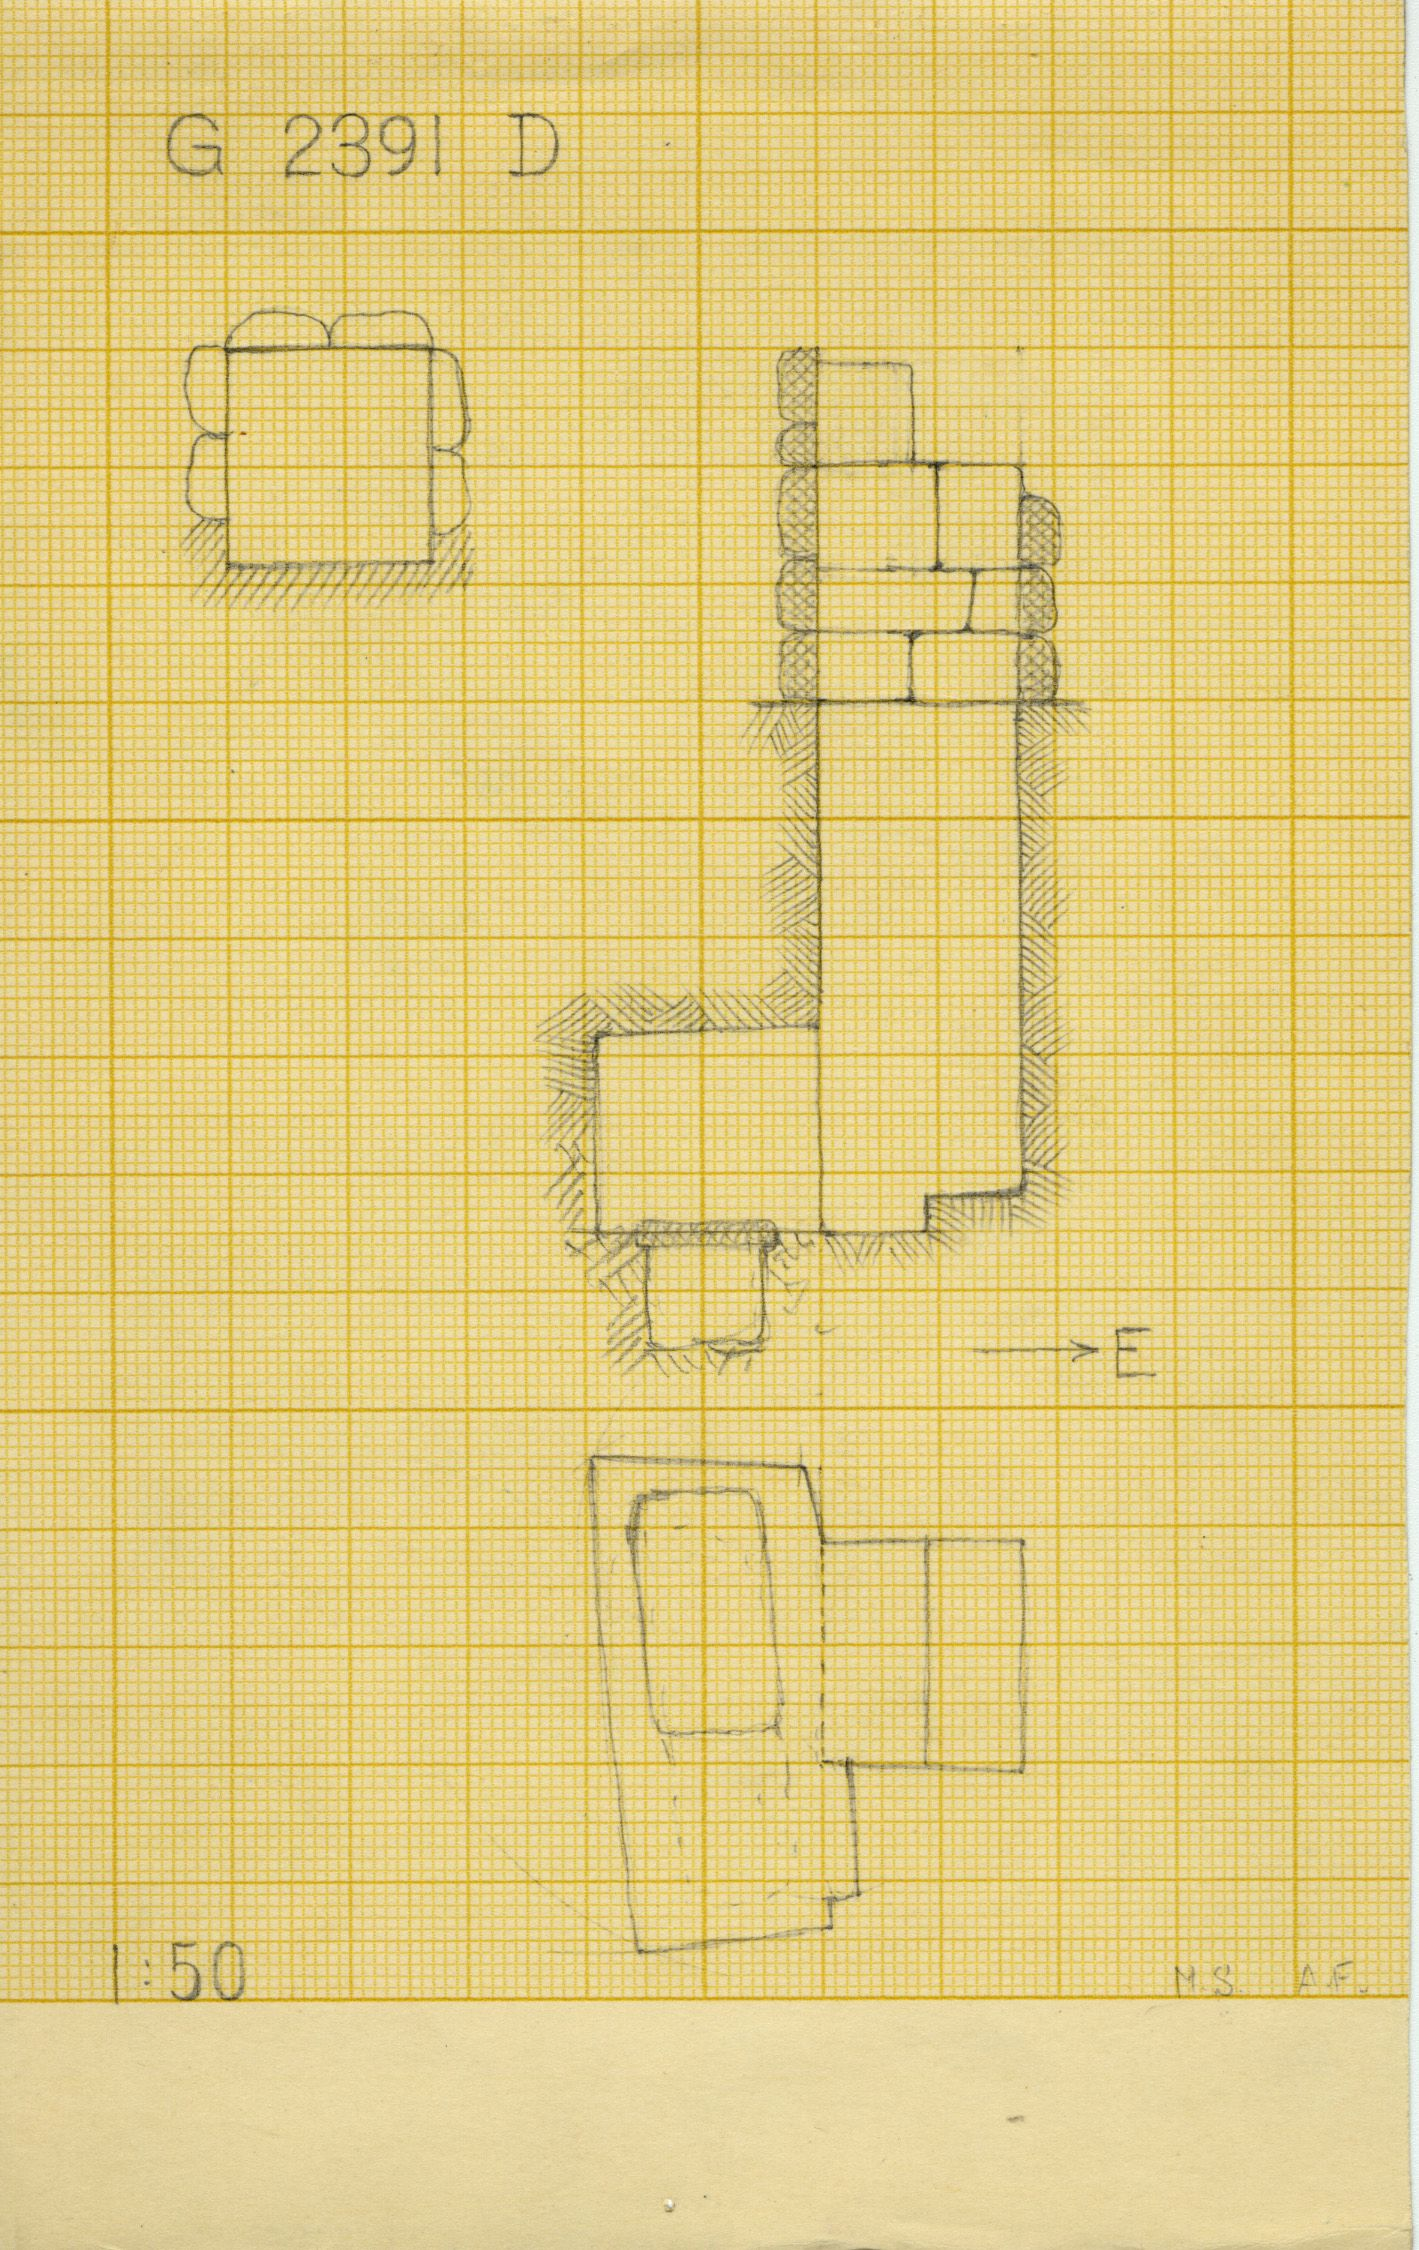 Maps and plans: G 2391, Shaft D